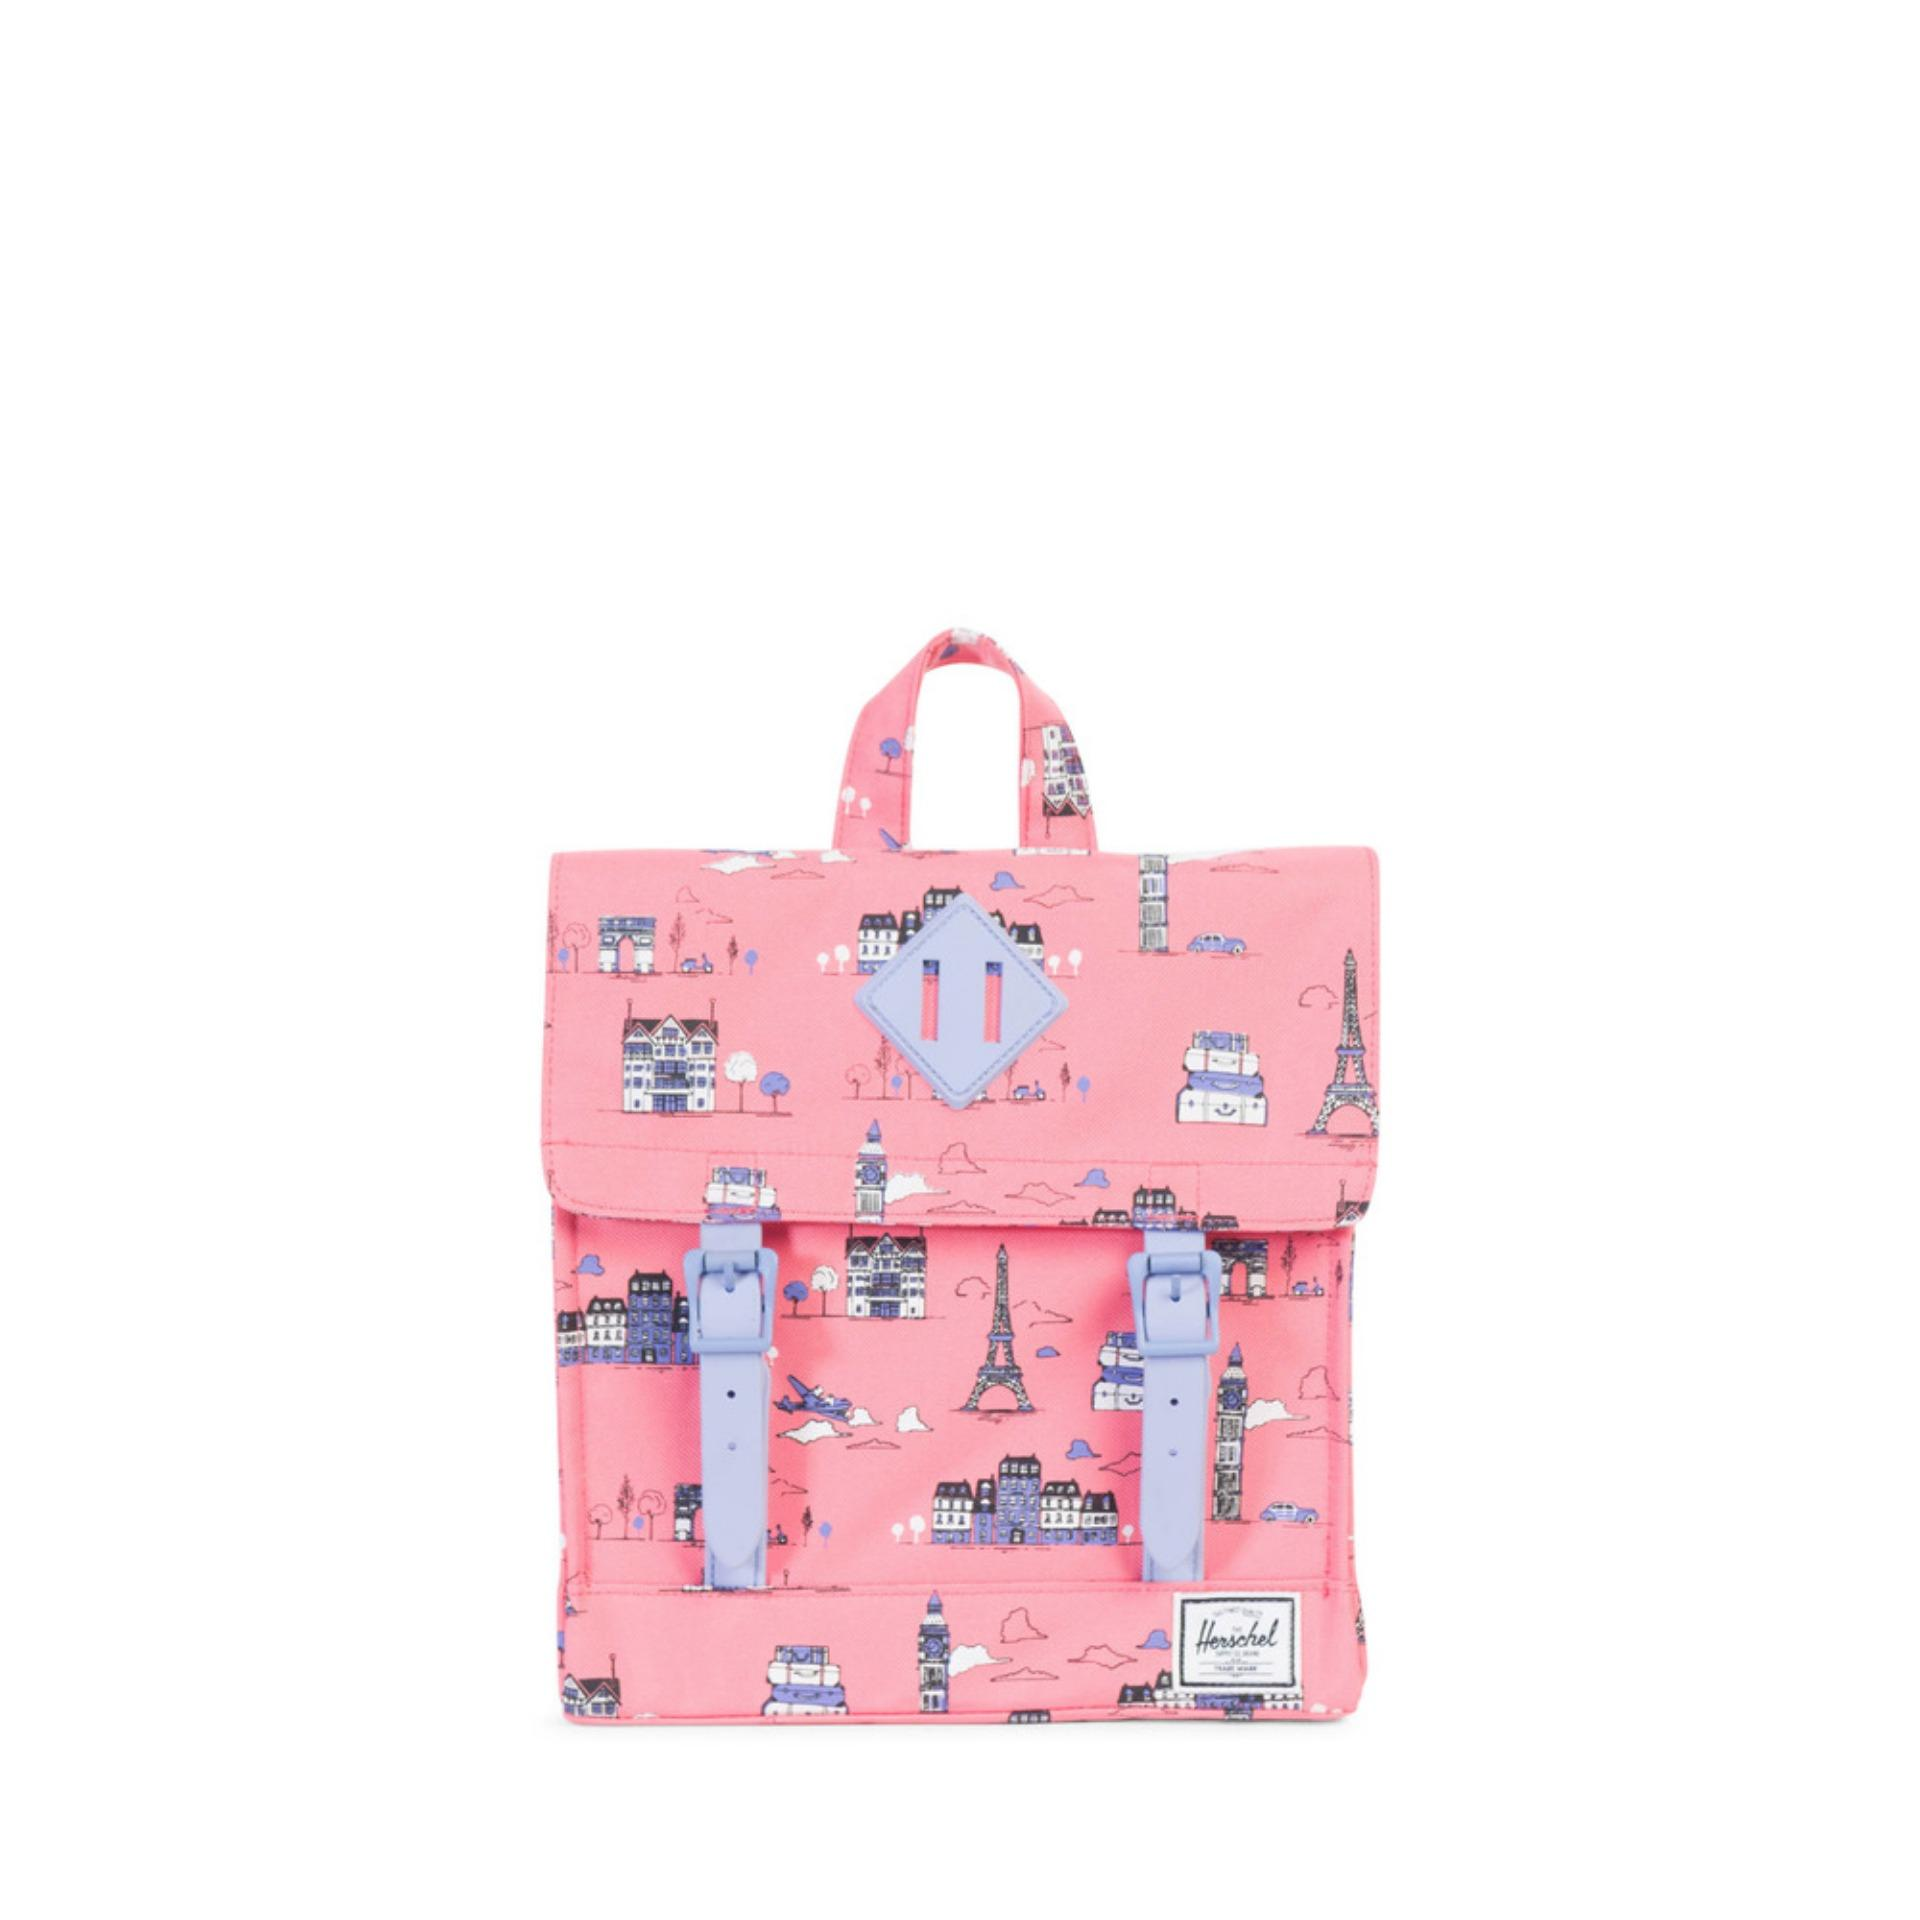 HERSCHEL SURVEY KID - Paris Pink/Deep Periwinkle Rubber